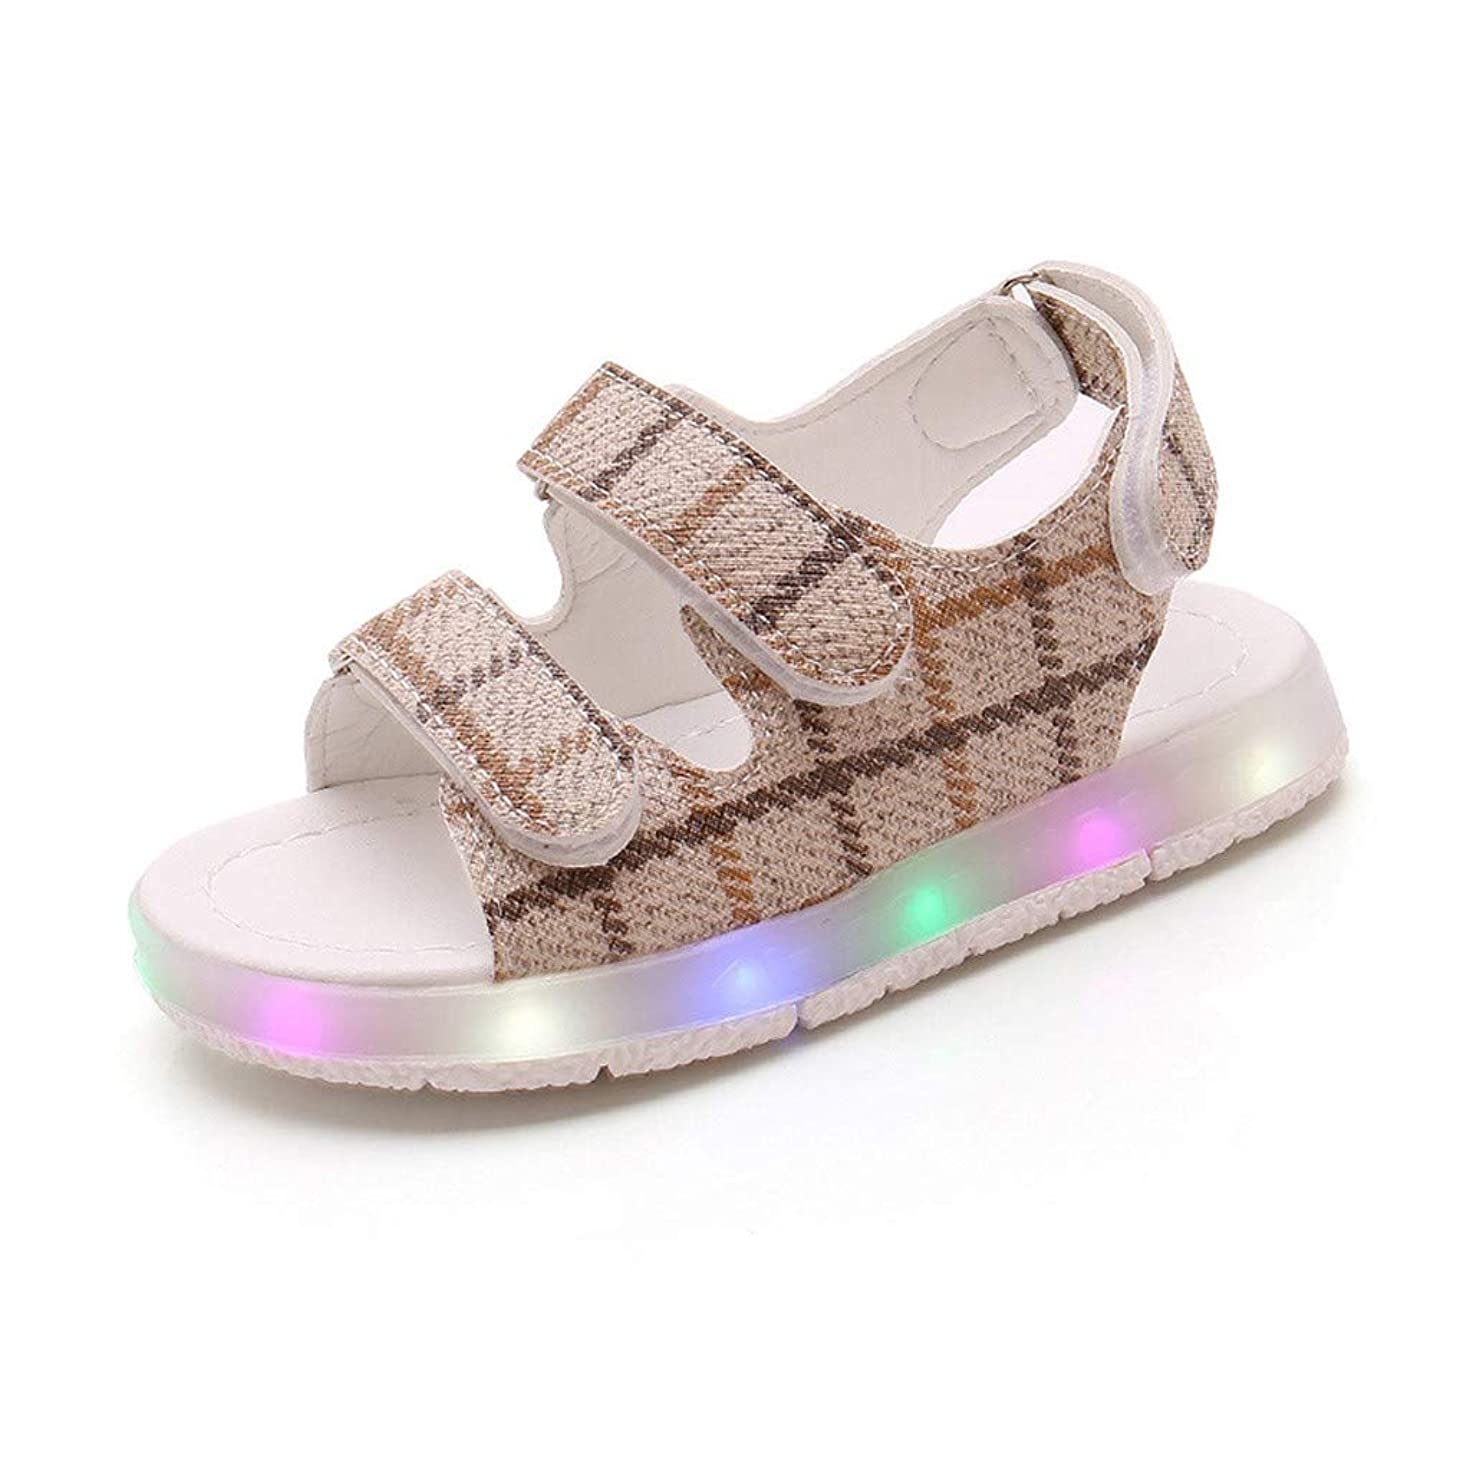 Haalife???Baby Toddler Girl's Flower Open Toe Strap Sandals Summer Flat Princess Shoes